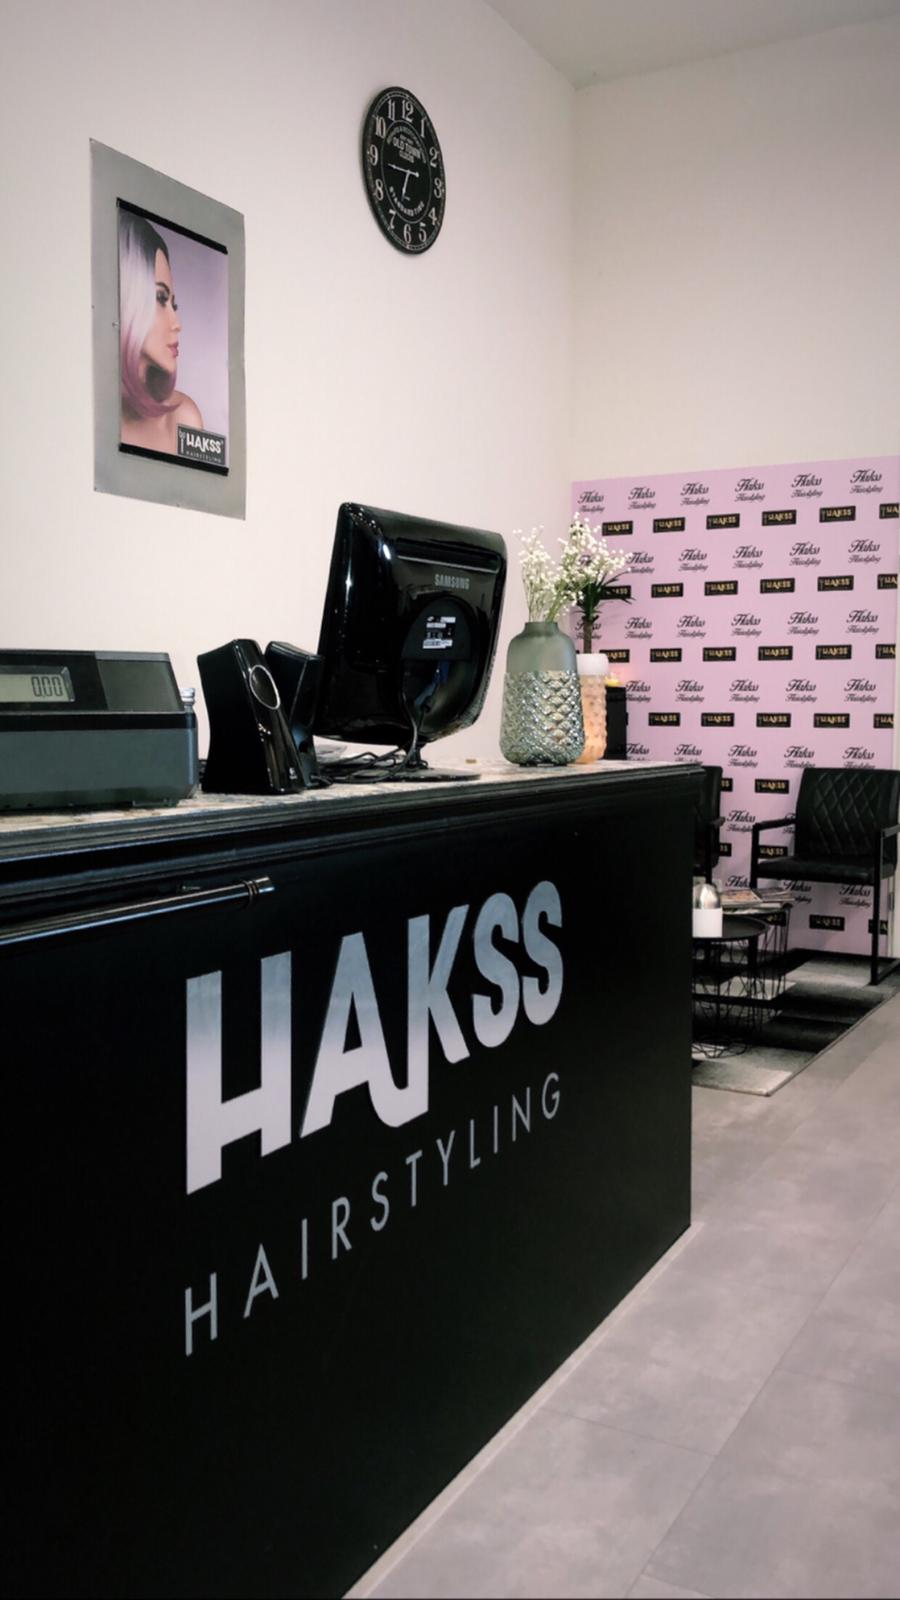 Over Hakss Hairstyling